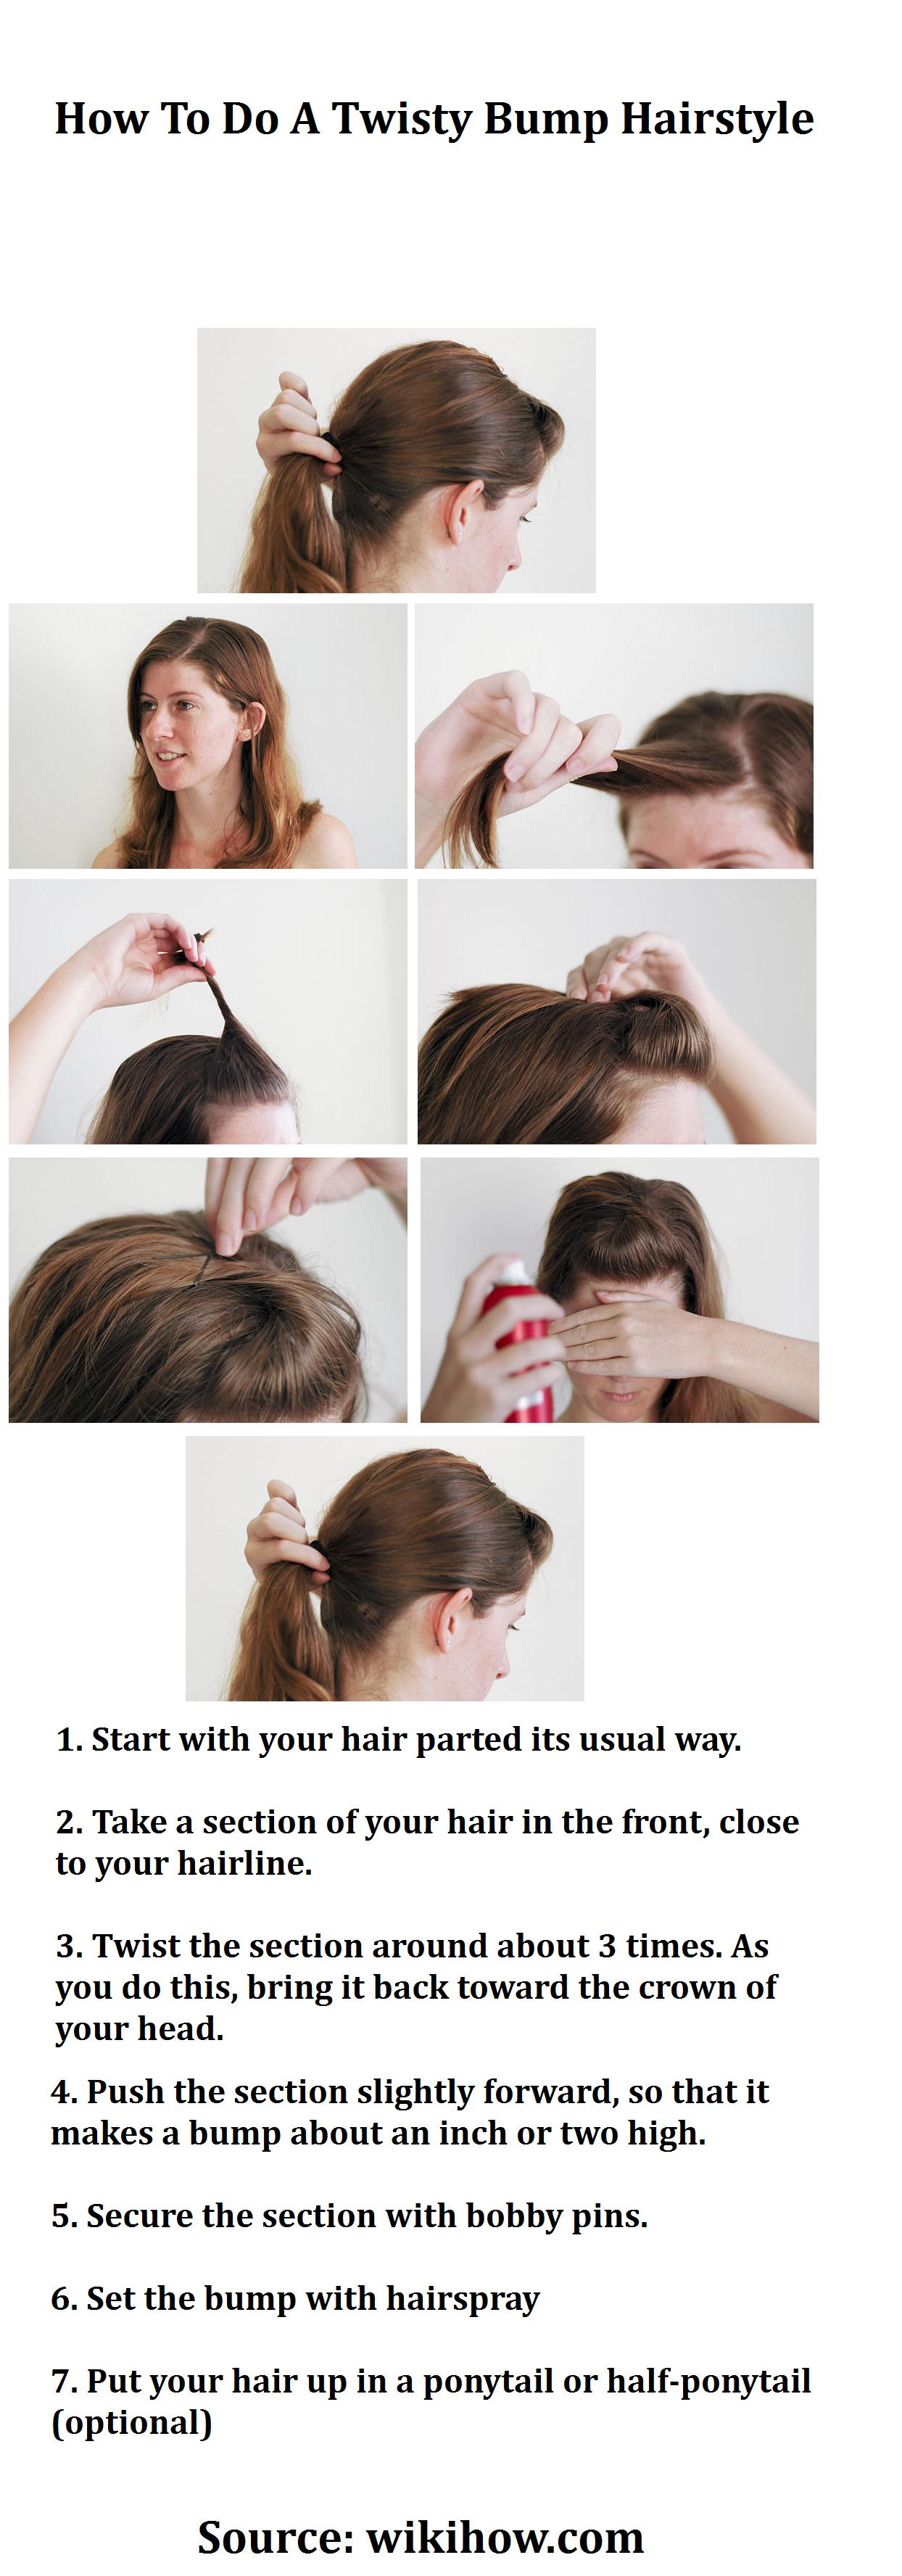 How To Do A Twisty Bump Hairstyle